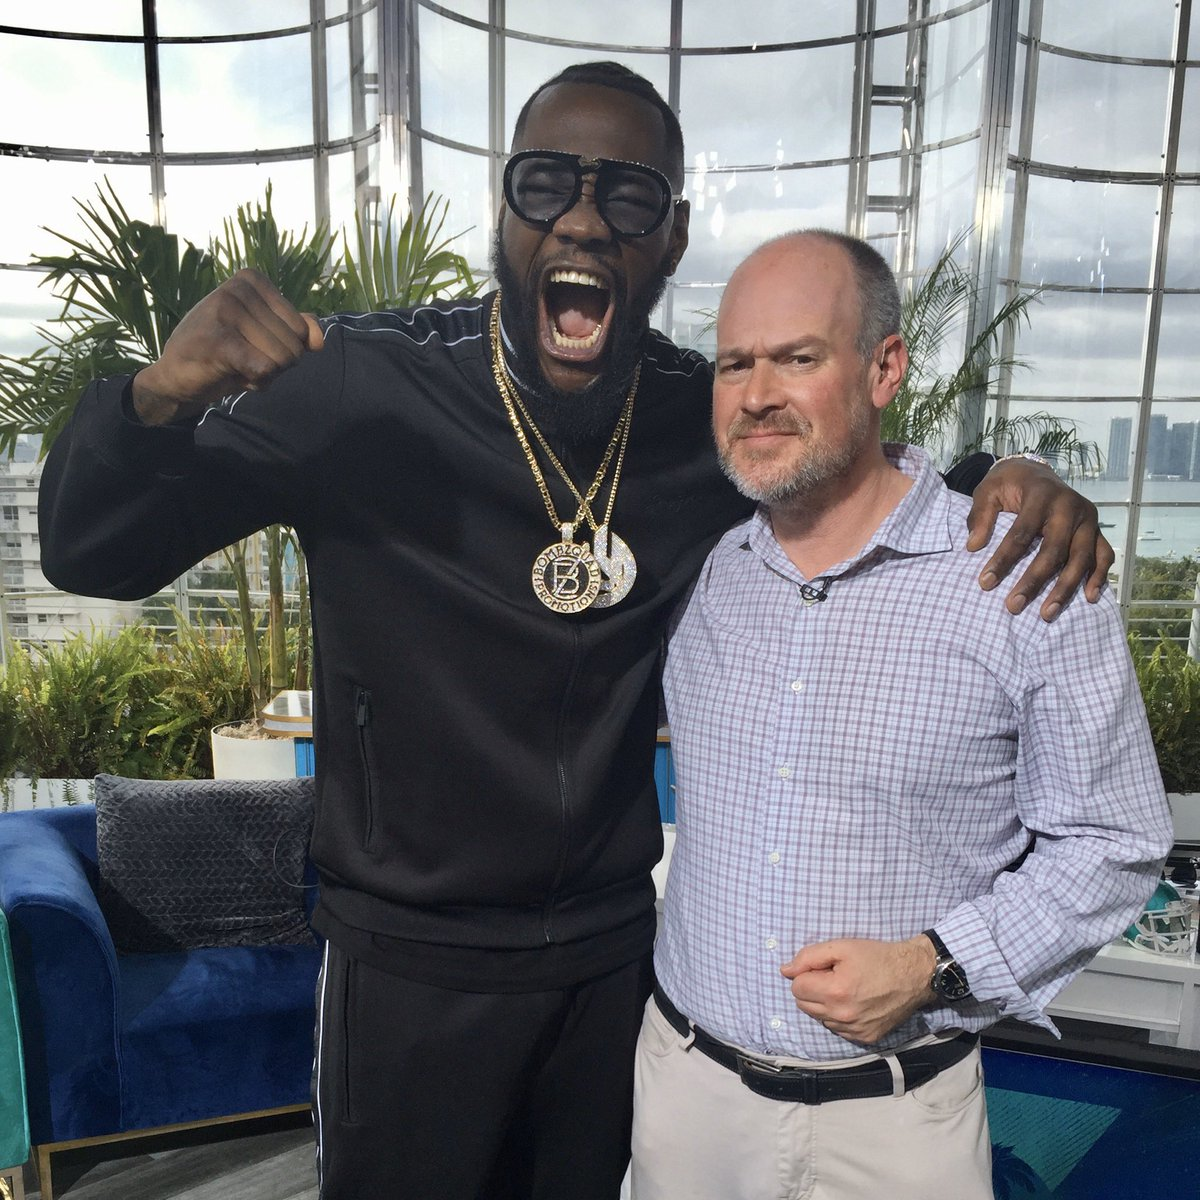 It wouldn't be a @BronzeBomber interview without a big 🗣 #BombZquad to finish it off! The Heavyweight Champ joined the @richeisenshow in Miami today to talk #WilderFury2 and more ahead of #SuperBowl2020. https://t.co/knTKuDYNbw